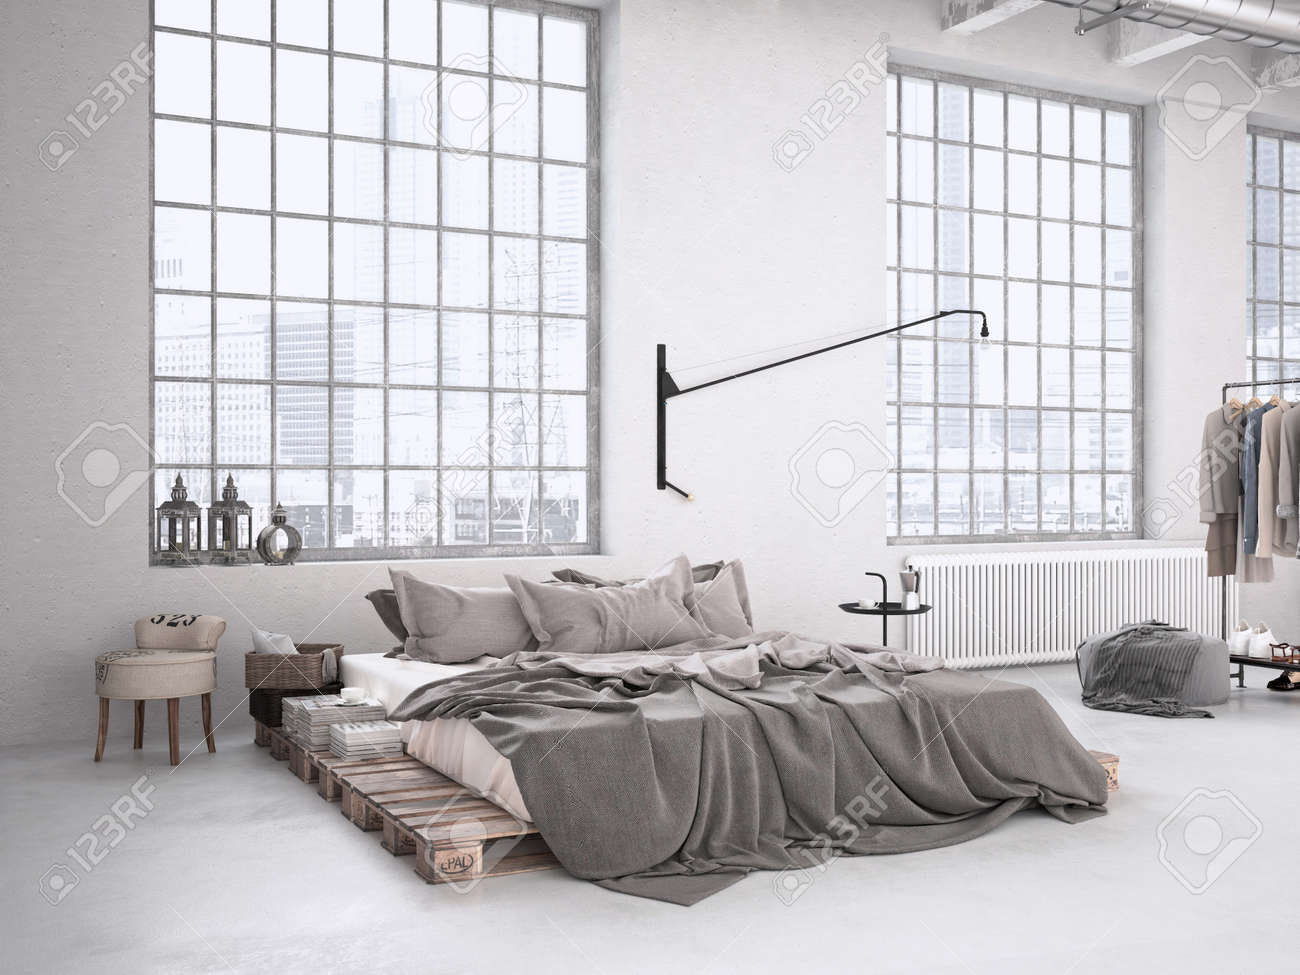 Uncategorized Industrial Bed modern industrial bedroom in a loft 3d rendering stock photo 44243878